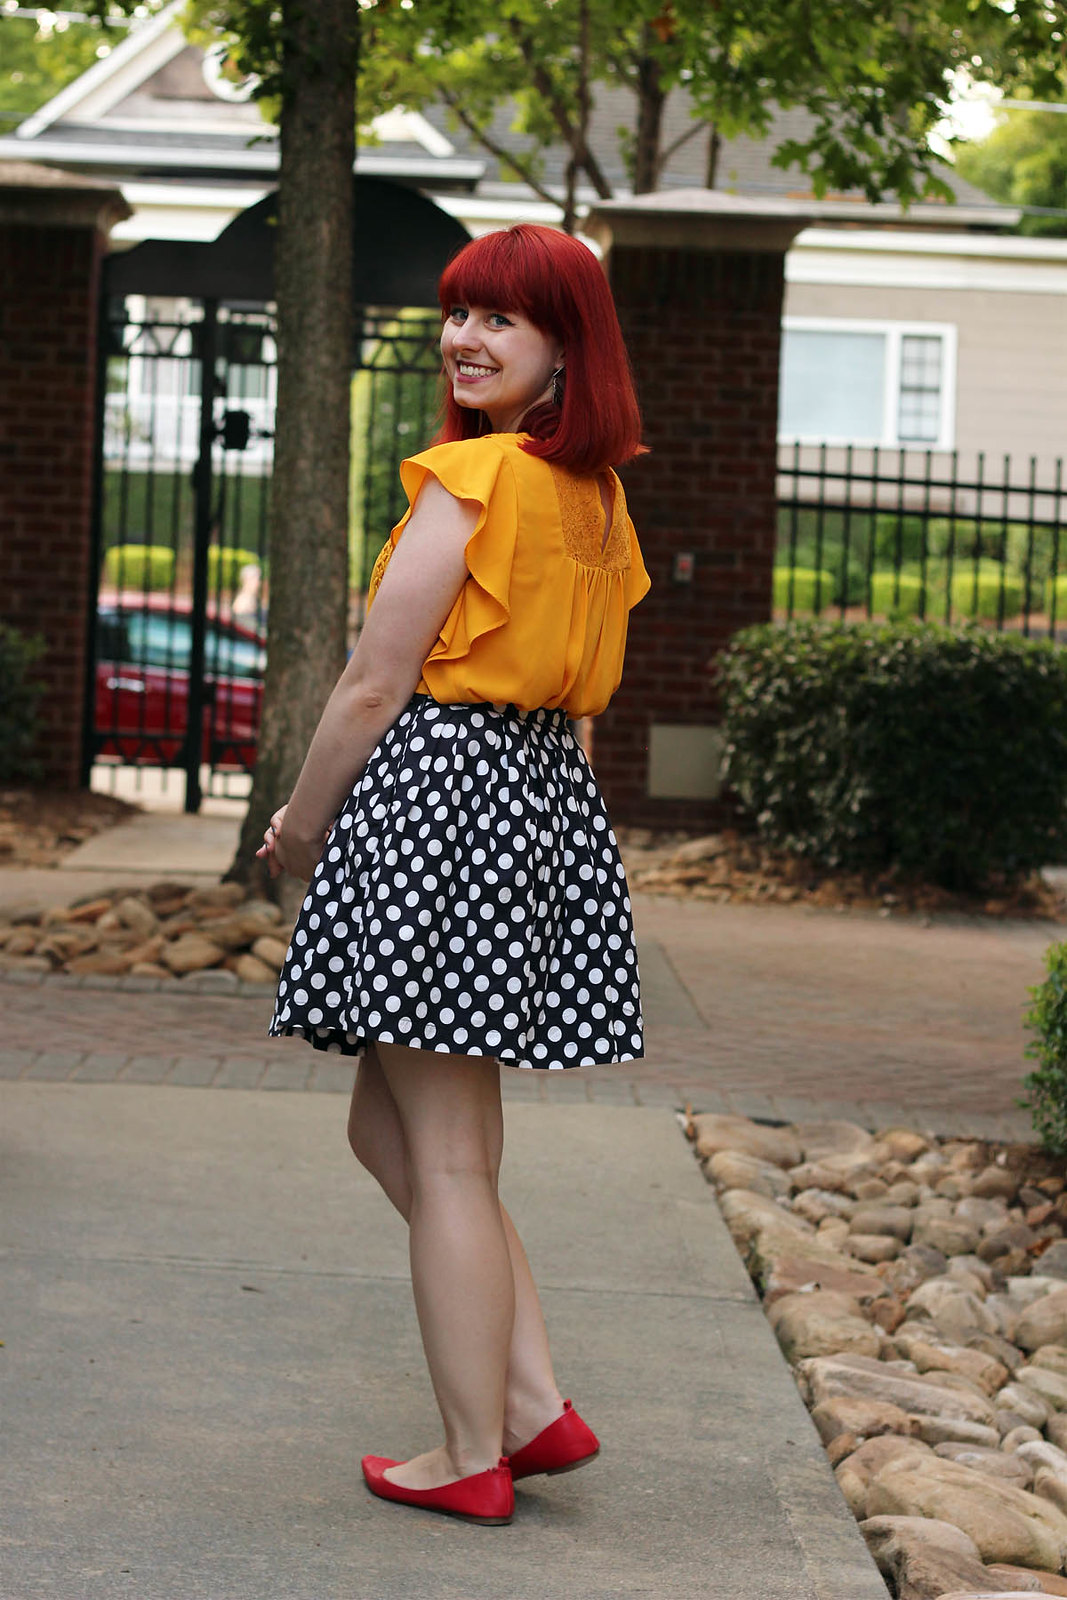 Mustard Yellow Ruffle Sleeve Shirt Polka Dot Pleated Skirt Red Pointed Flats